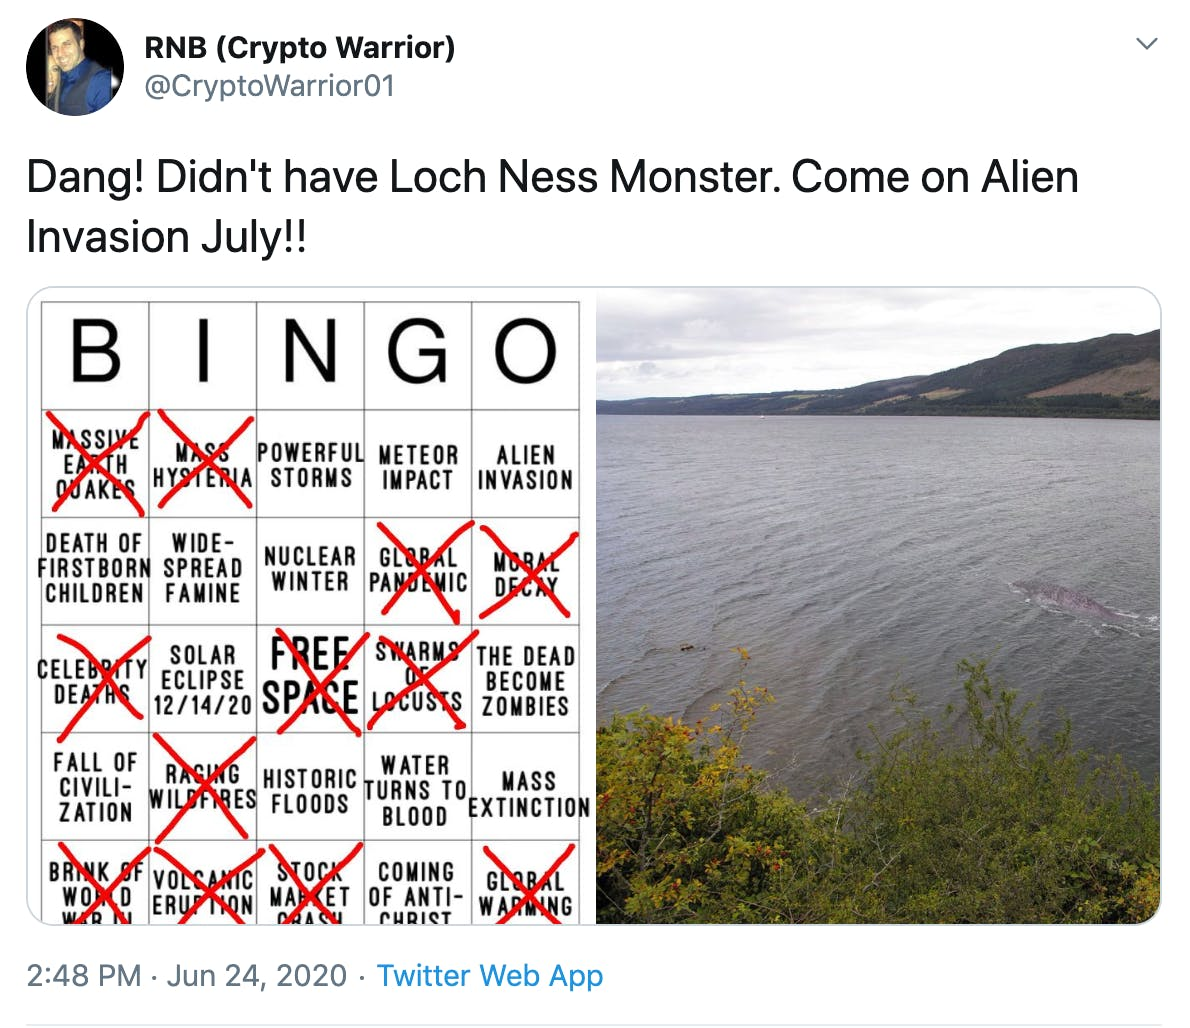 """""""Dang! Didn't have Loch Ness Monster. Come on Alien Invasion July!!"""" followed by picture of filled out Bingo card and image of """"Nessie"""""""